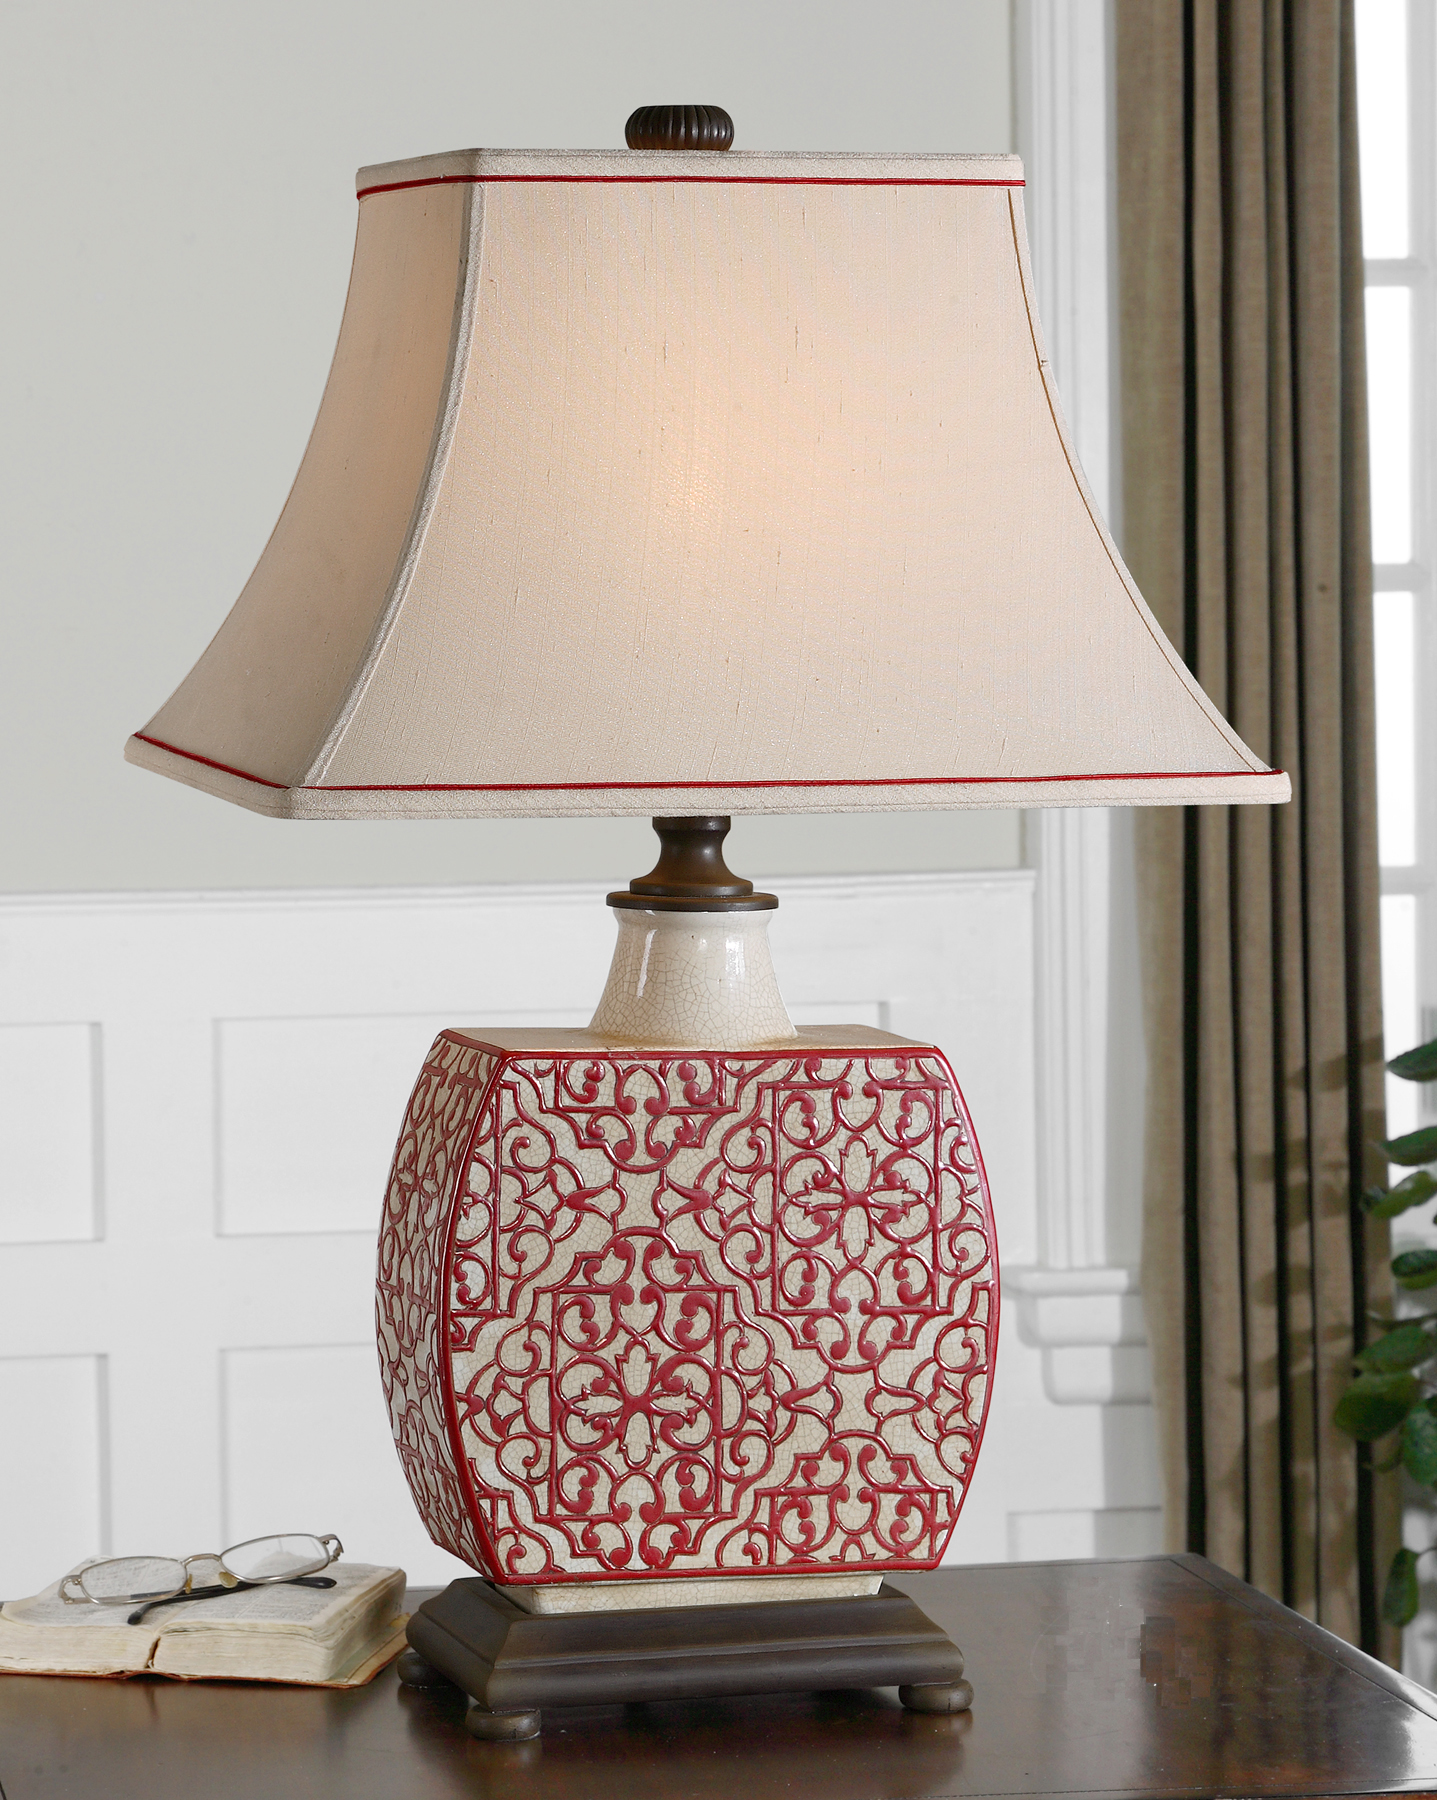 Mcnabb risley 3564 mcnabb risley everything about this lamp is perfection i love the porcelain fretwork design the red piping on the linen lamp shade and the classic wood base aloadofball Choice Image